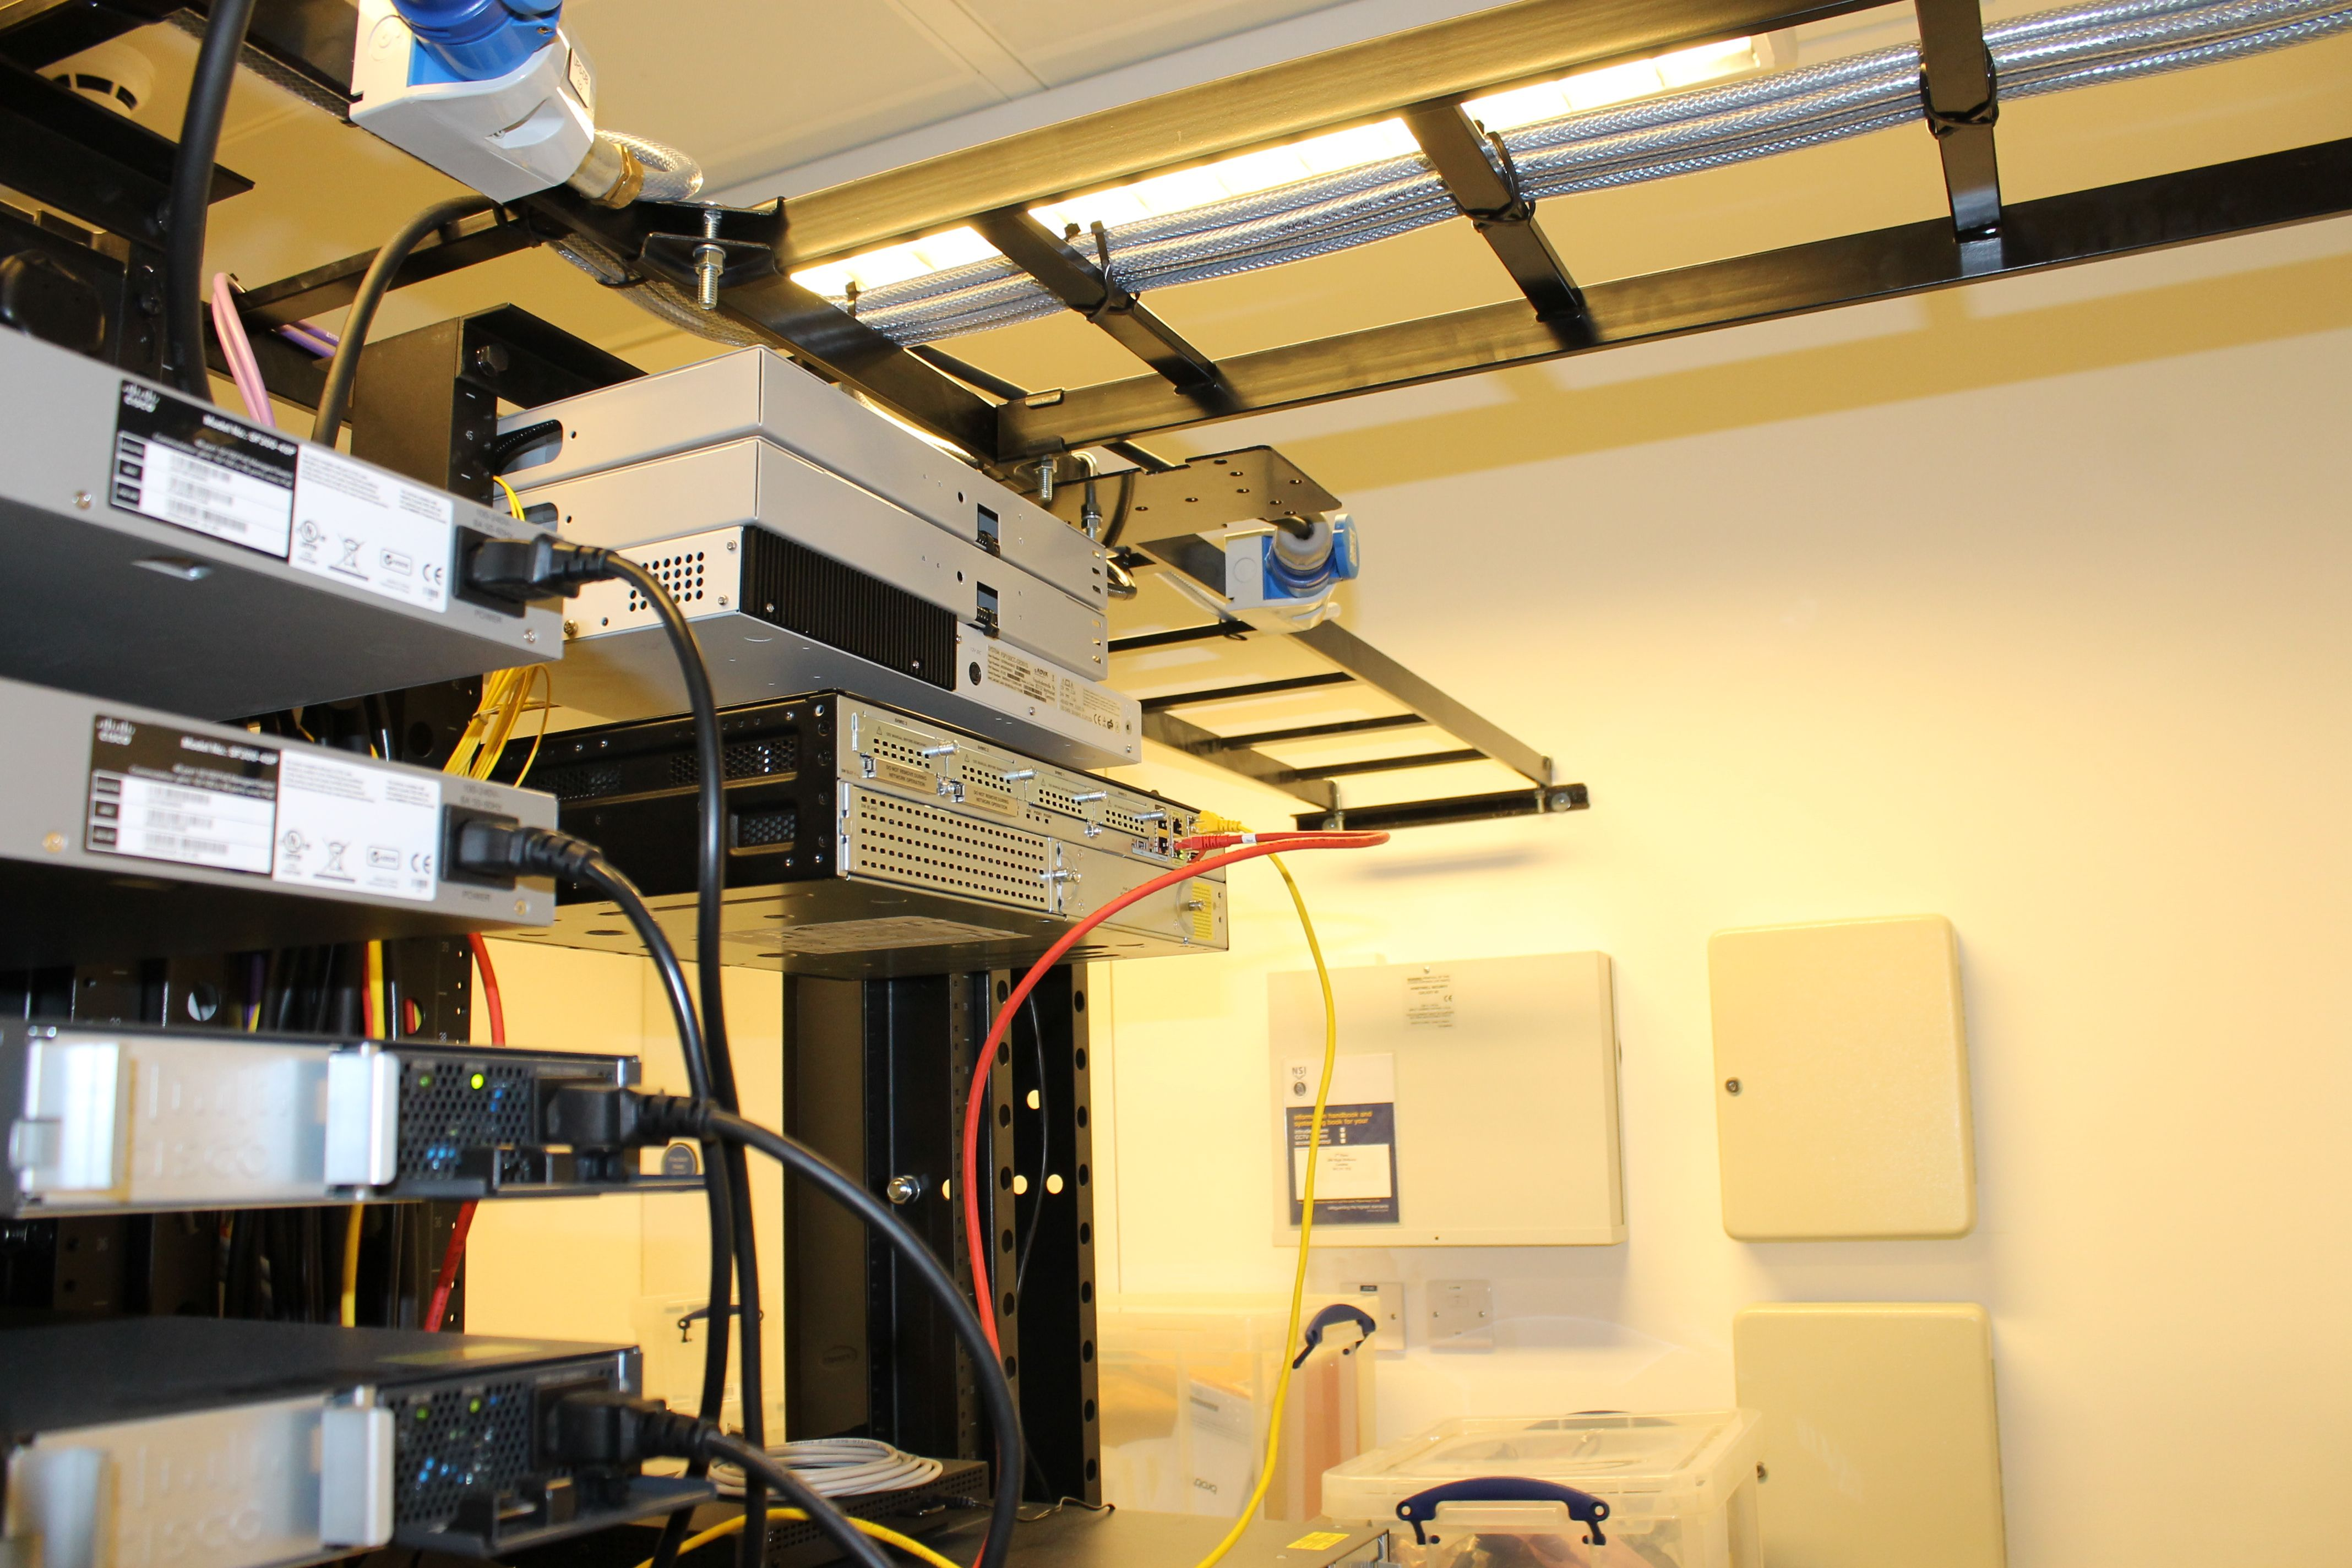 Hubbell Nextframe Overhead Ladder Rack Installation By Inflectiontech Helps Keep Cabling Oraganised Overhead Ladder Ladder Rack Data Center